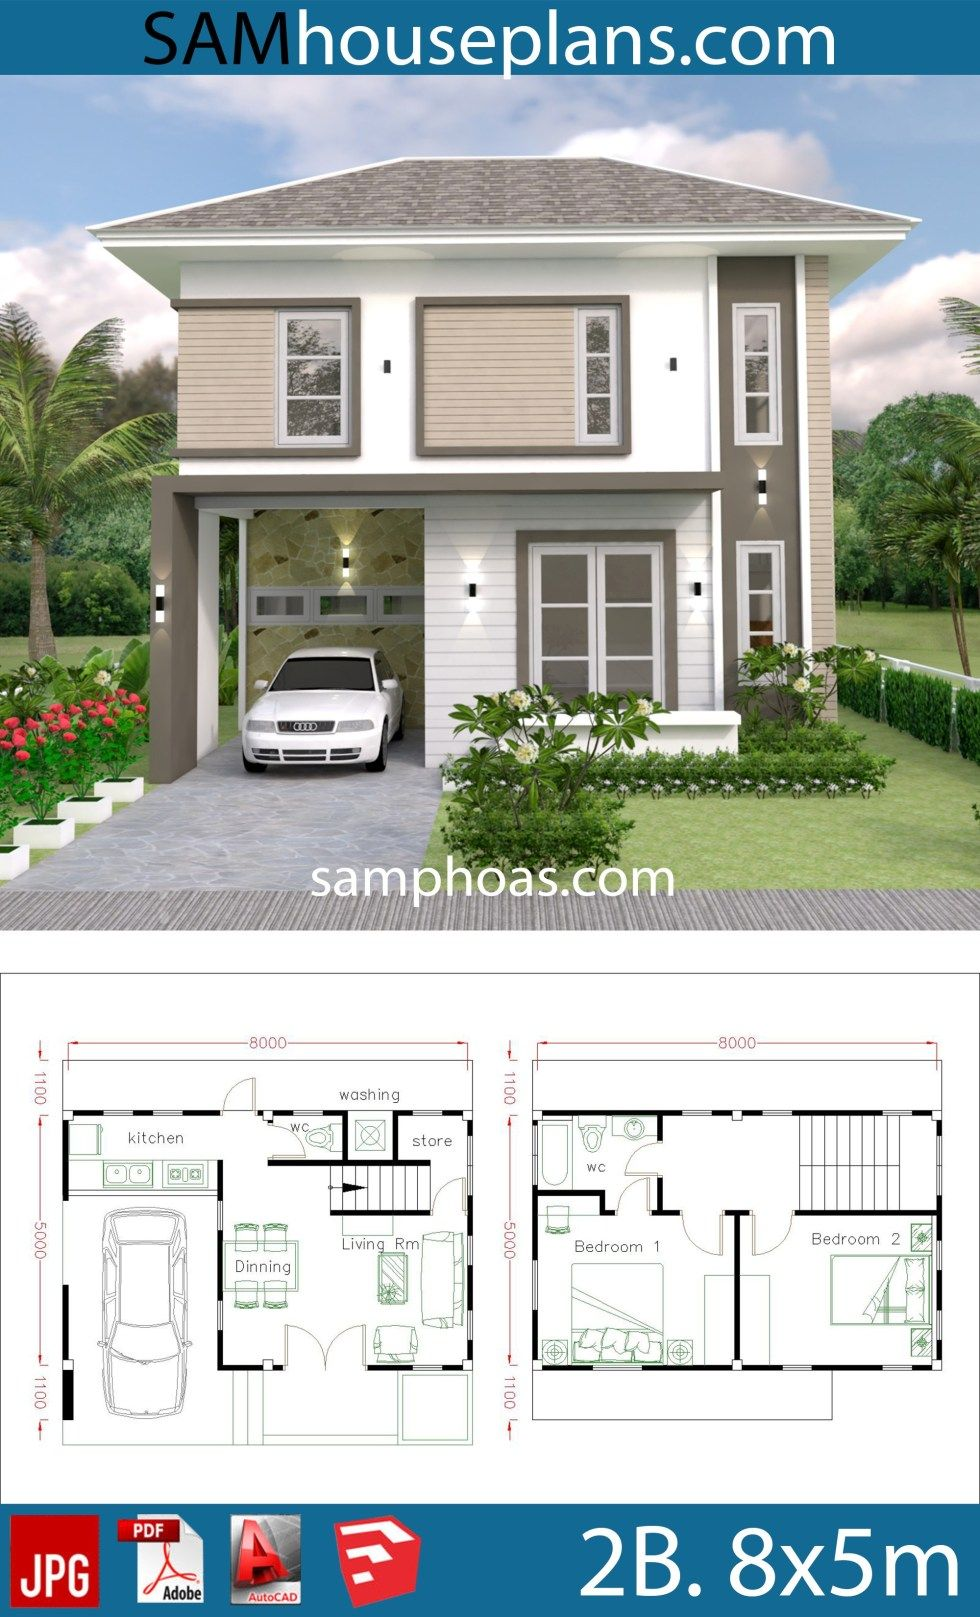 Small Home Design Plan 8x5m With 2 Bedrooms In 2020 Small House Design Bungalow House Design House Plans